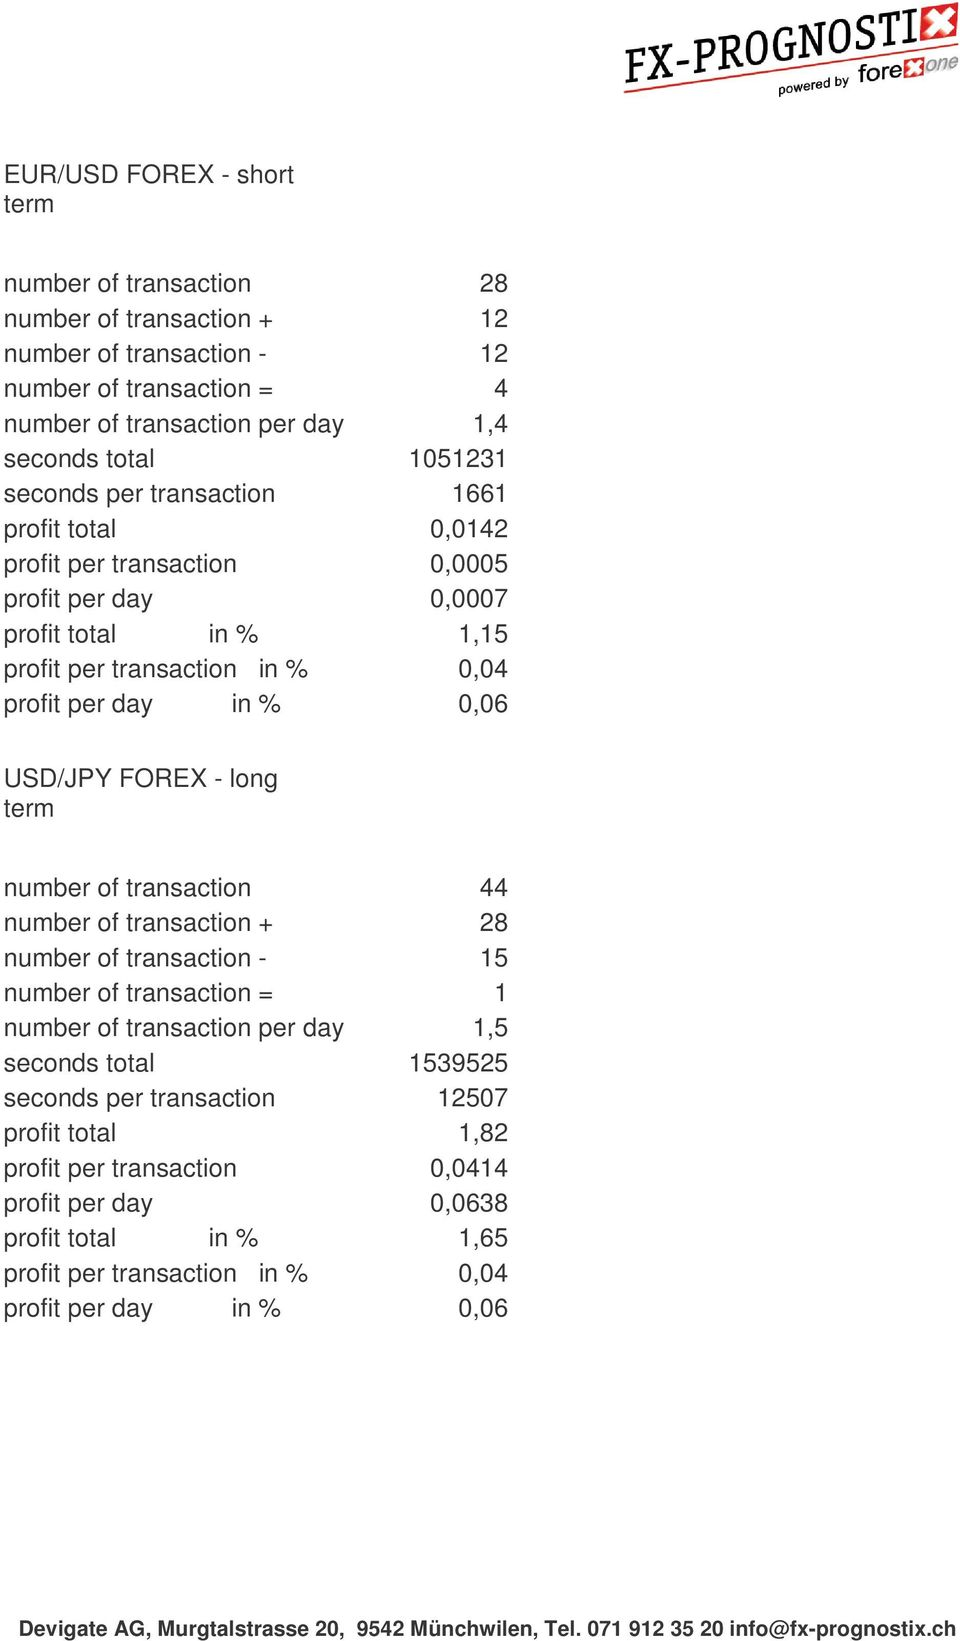 in % 0,06 USD/JPY FOREX - long number of transaction 44 number of transaction + 28 number of transaction - 15 number of transaction = 1 number of transaction per day 1,5 seconds